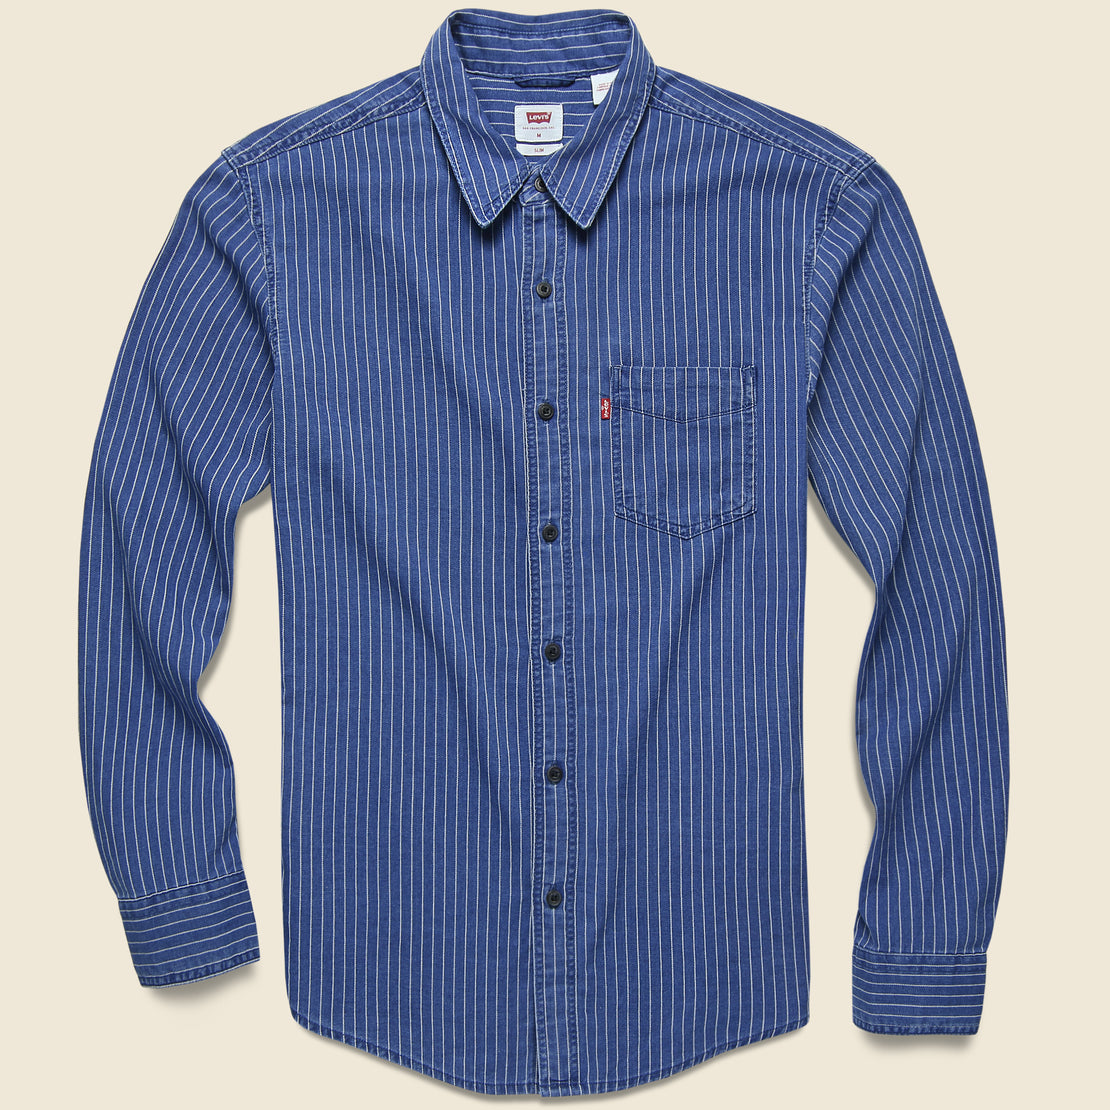 Levis Premium Sunset One-Pocket Slim Shirt - Indigo Stripe